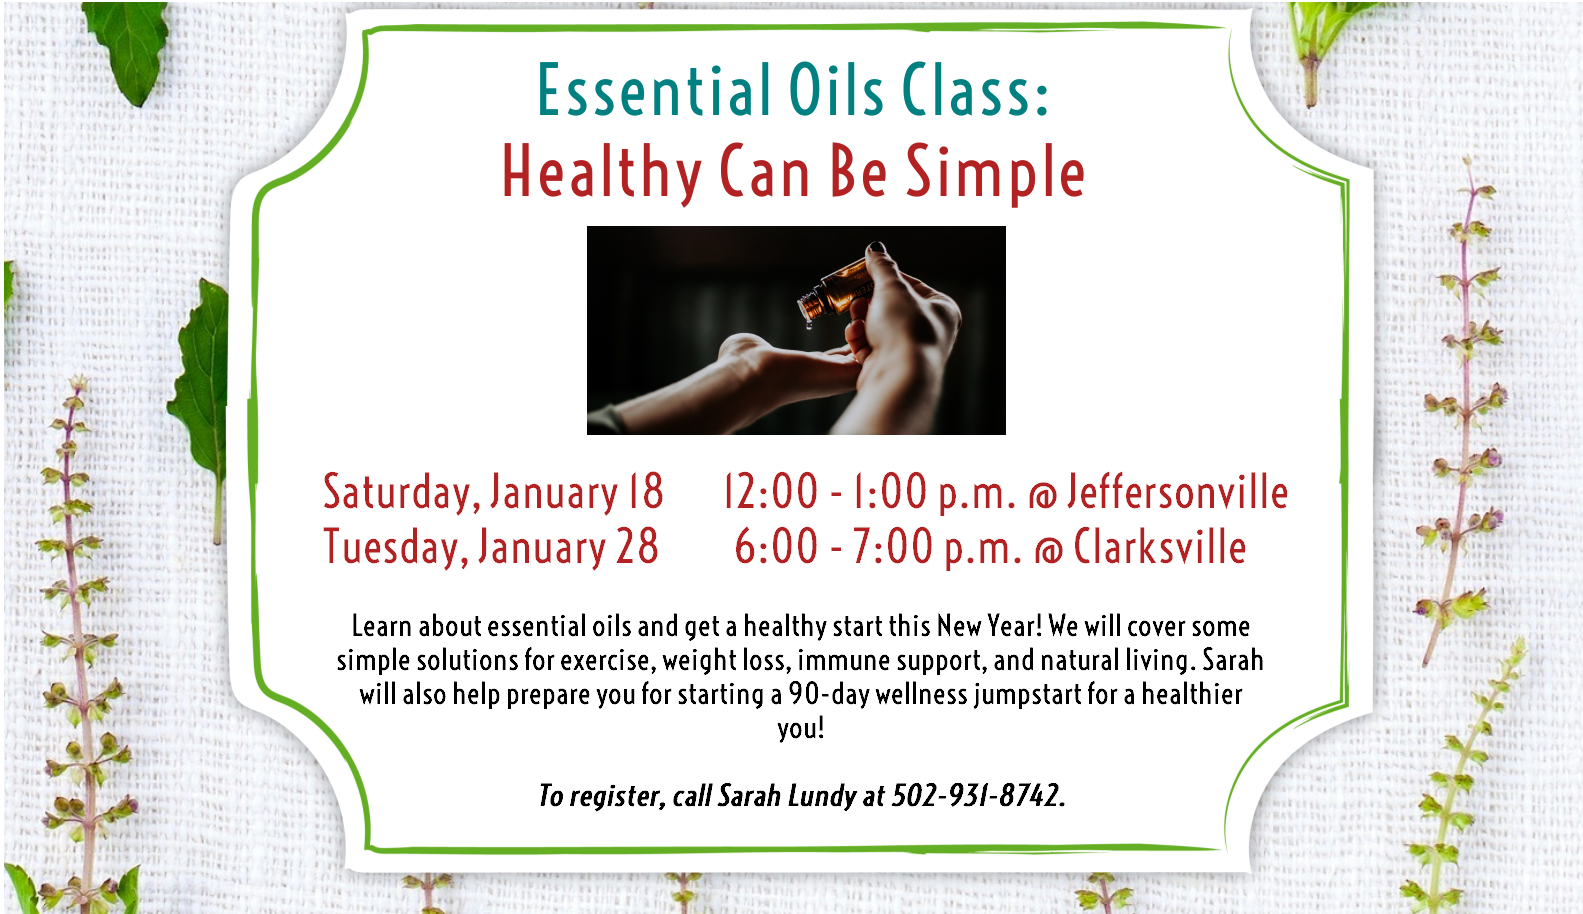 Flyer advertising Essential Oils classes on 18 and 28 January 2020